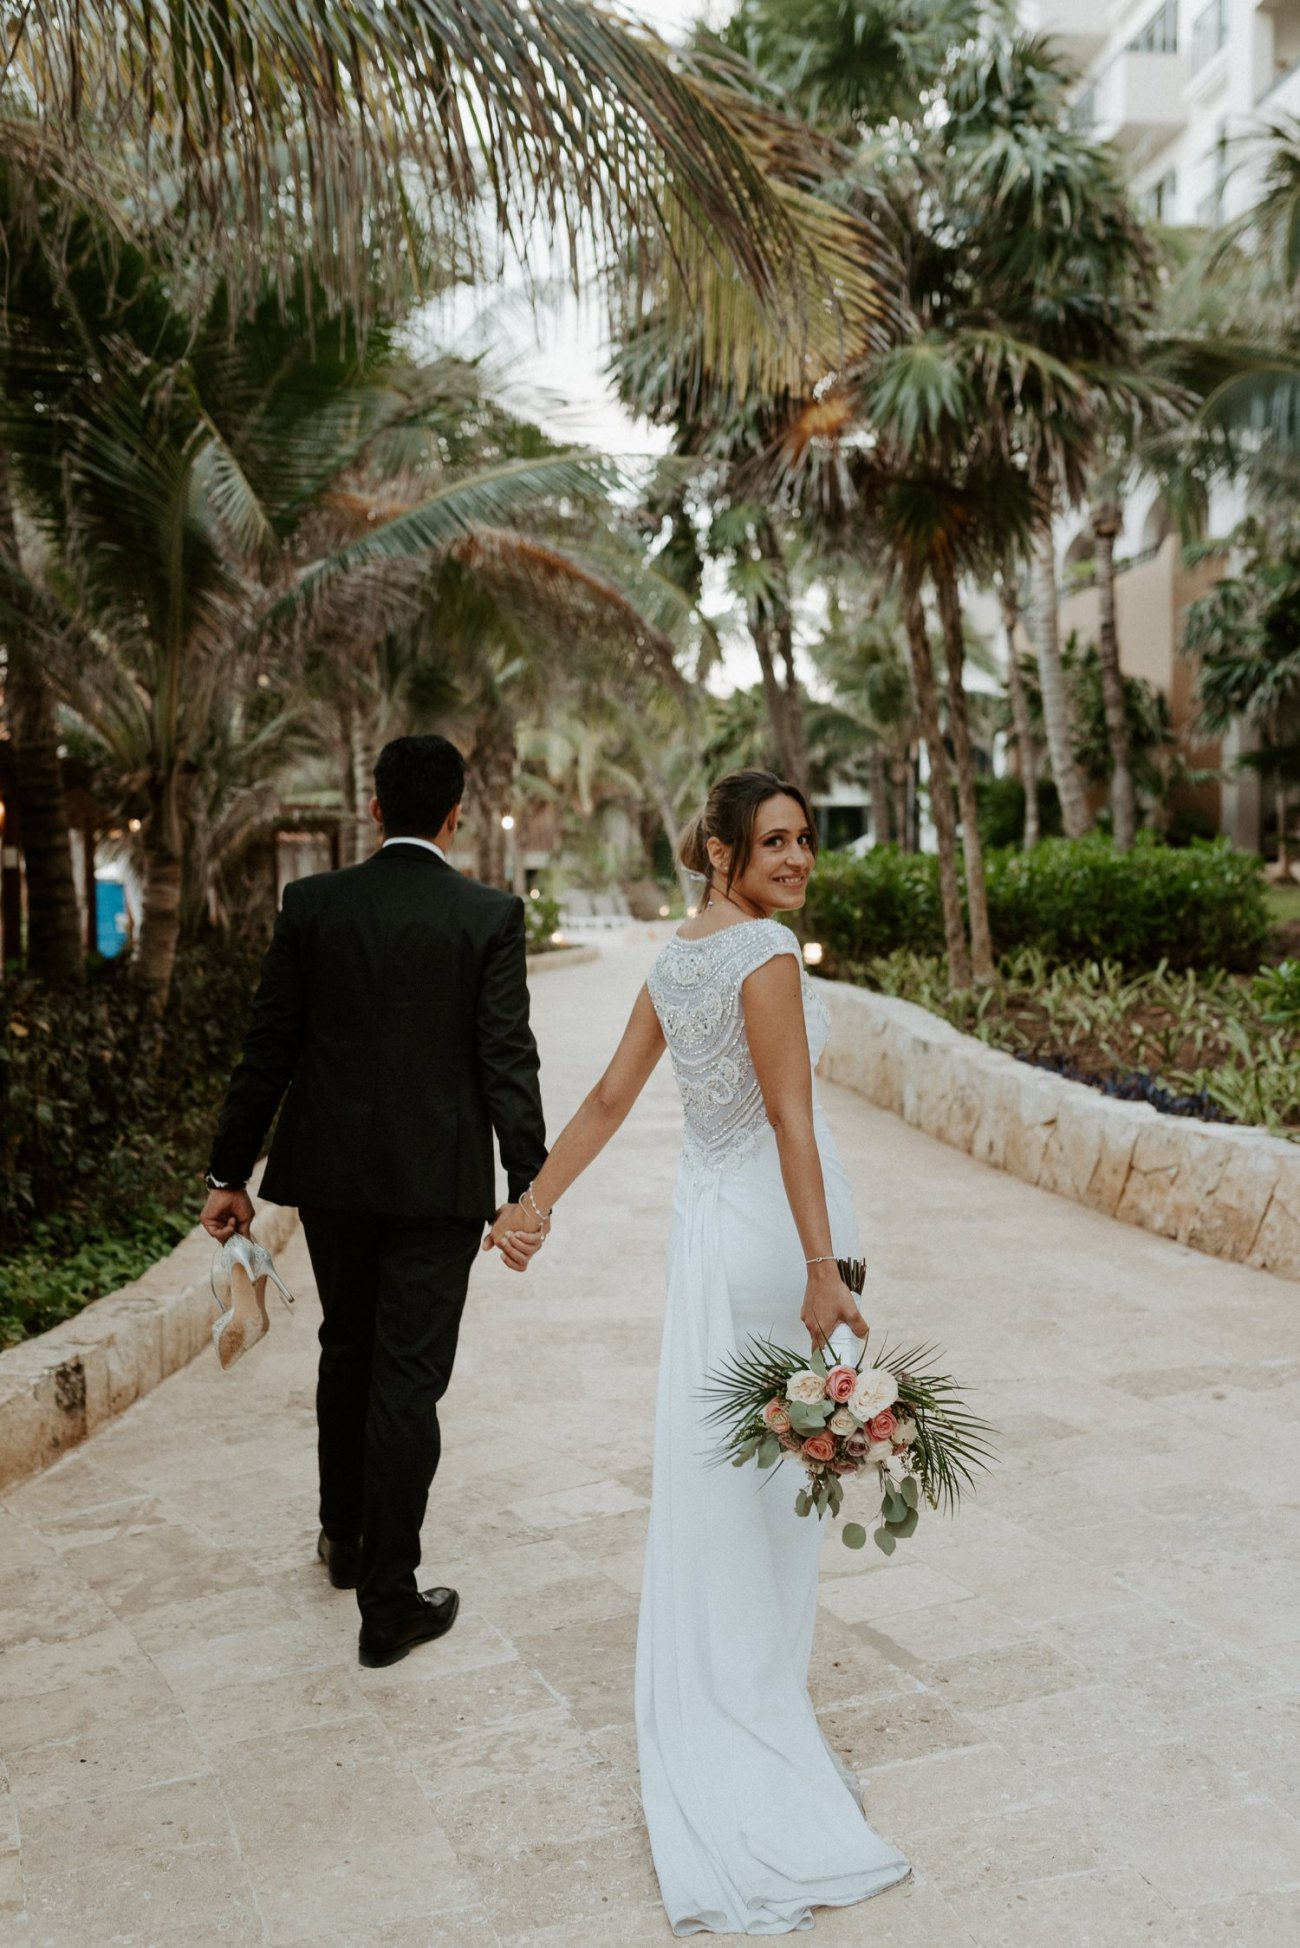 Cancun Destination Wedding Mexico Tulum Wedding Photographer Anais Possamai Photography 053